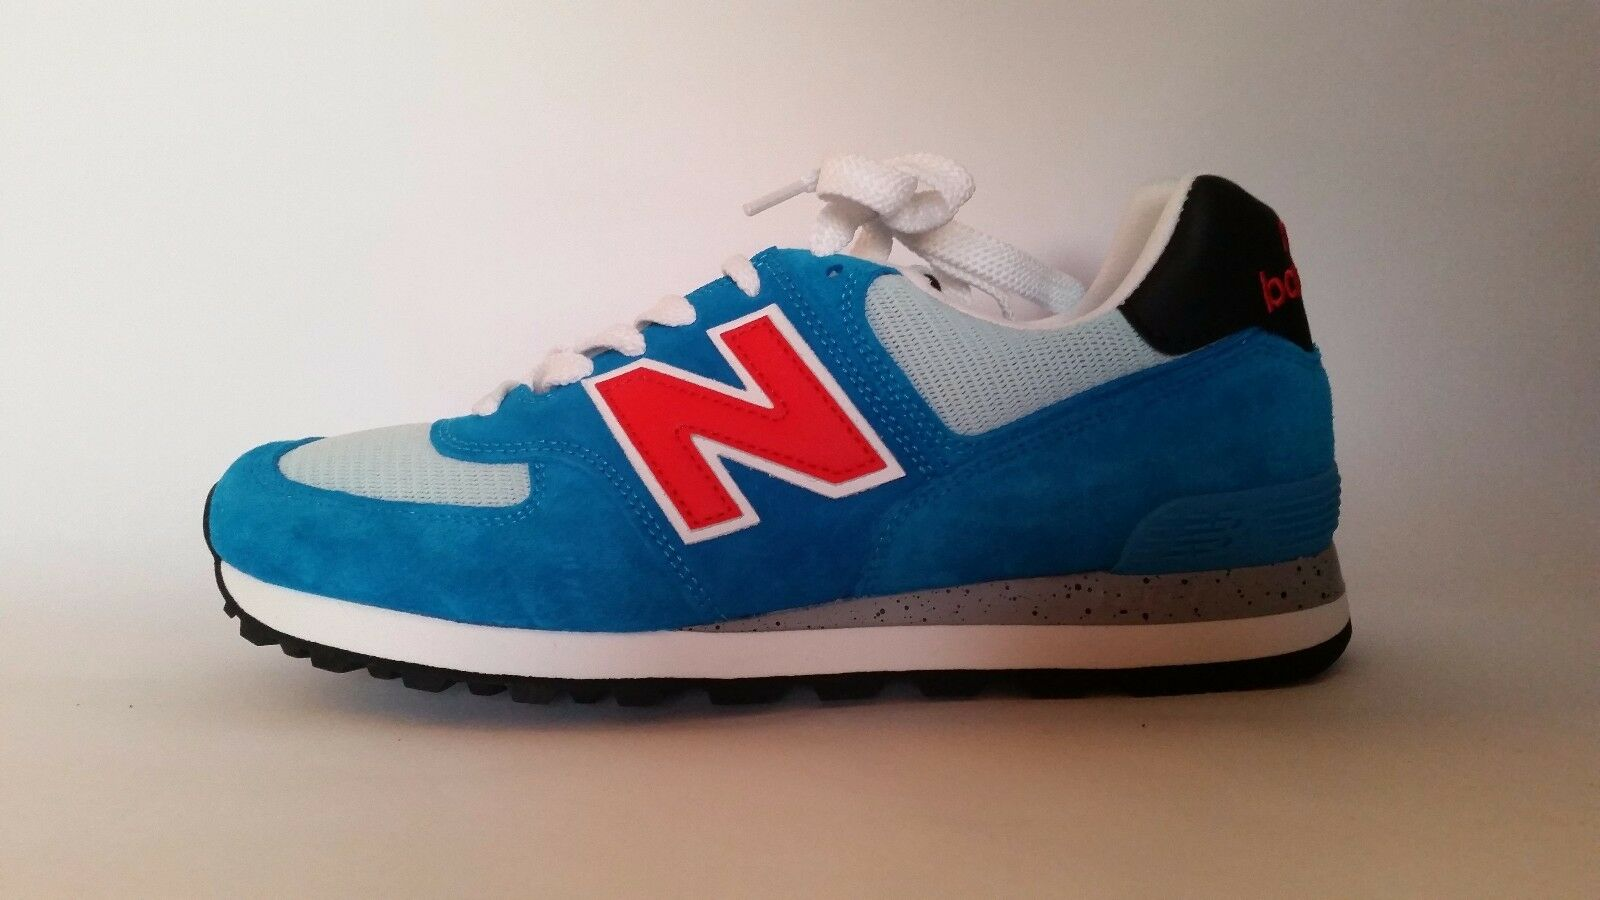 NEW NEW NEW BALANCE CLASSICS 574 trainers UK Größe 9 new with box be8038